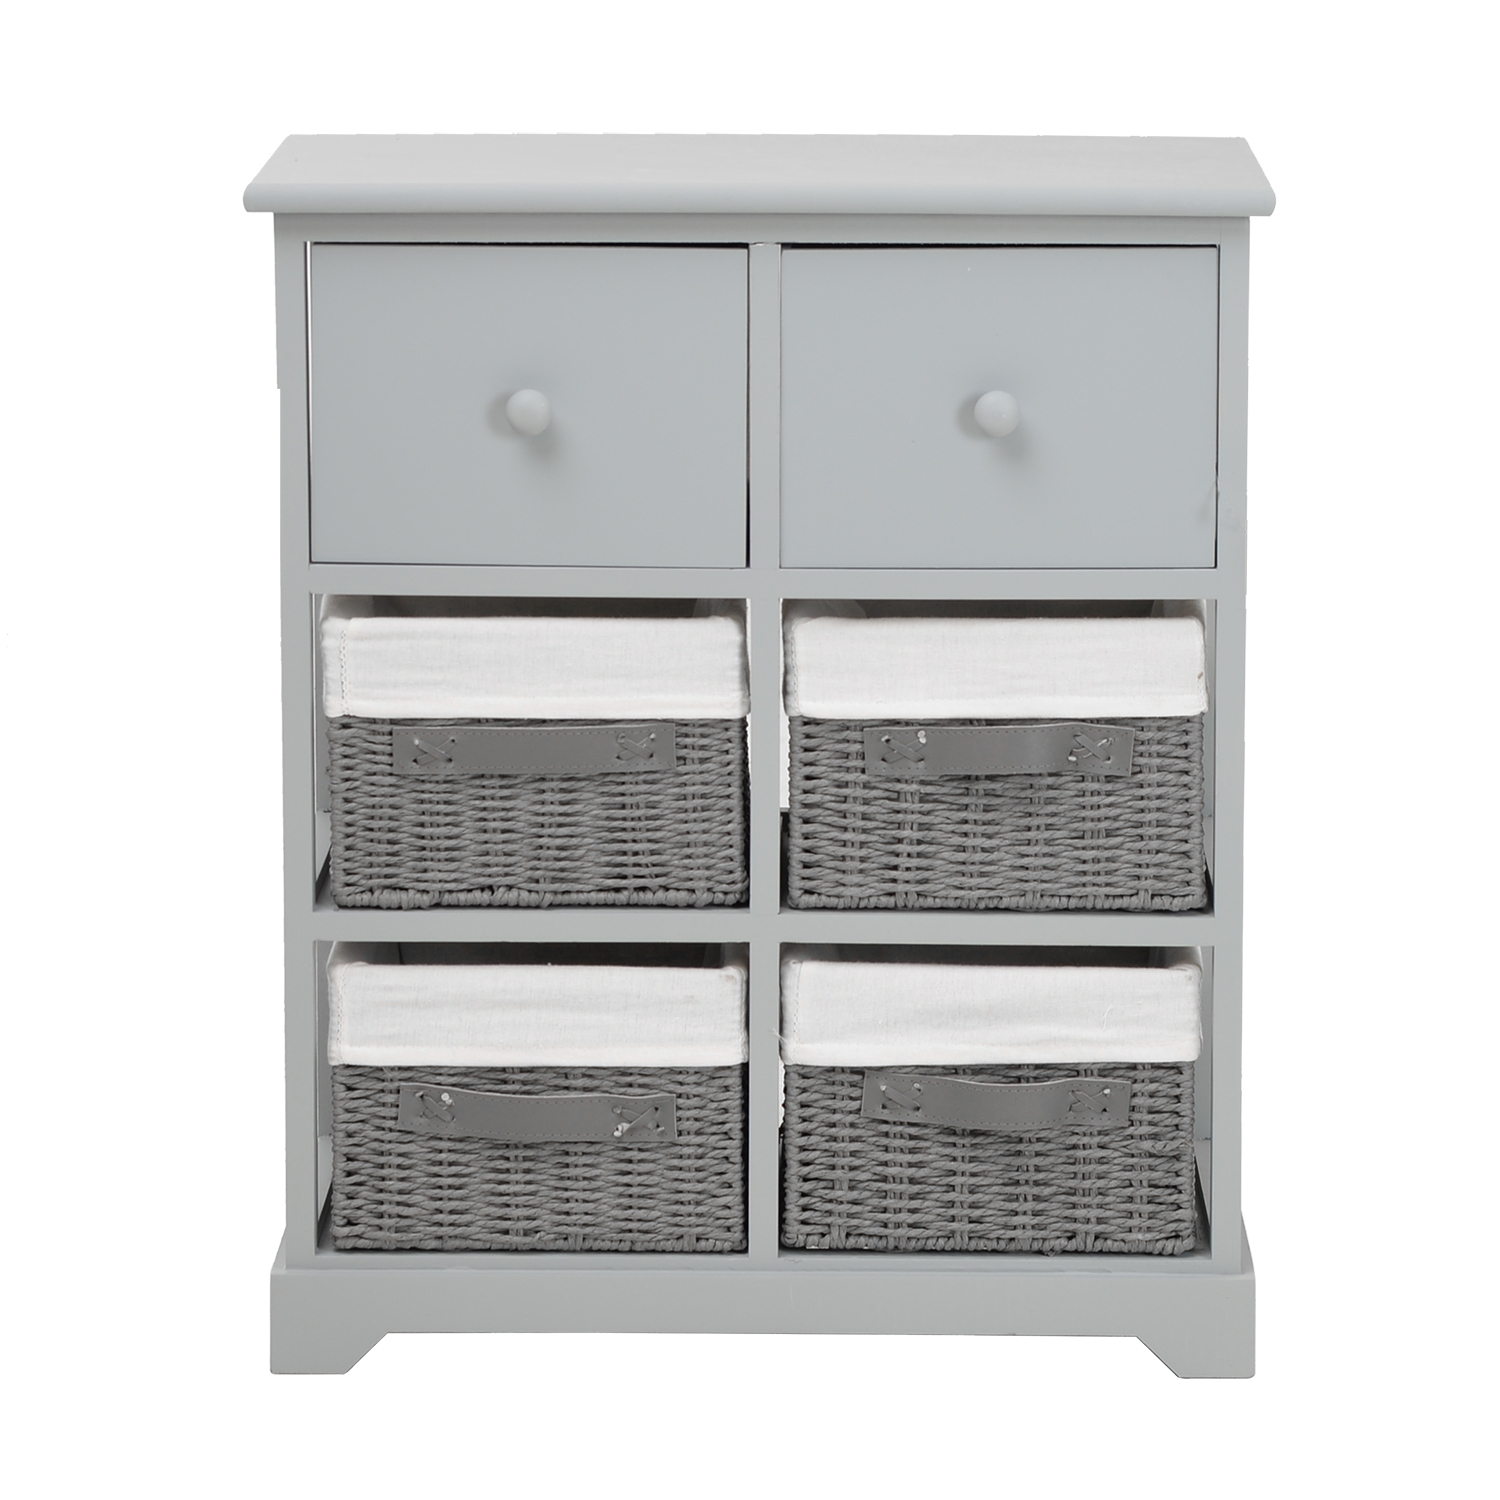 Image of Casa Unit With 6 Basket Drawers, Grey